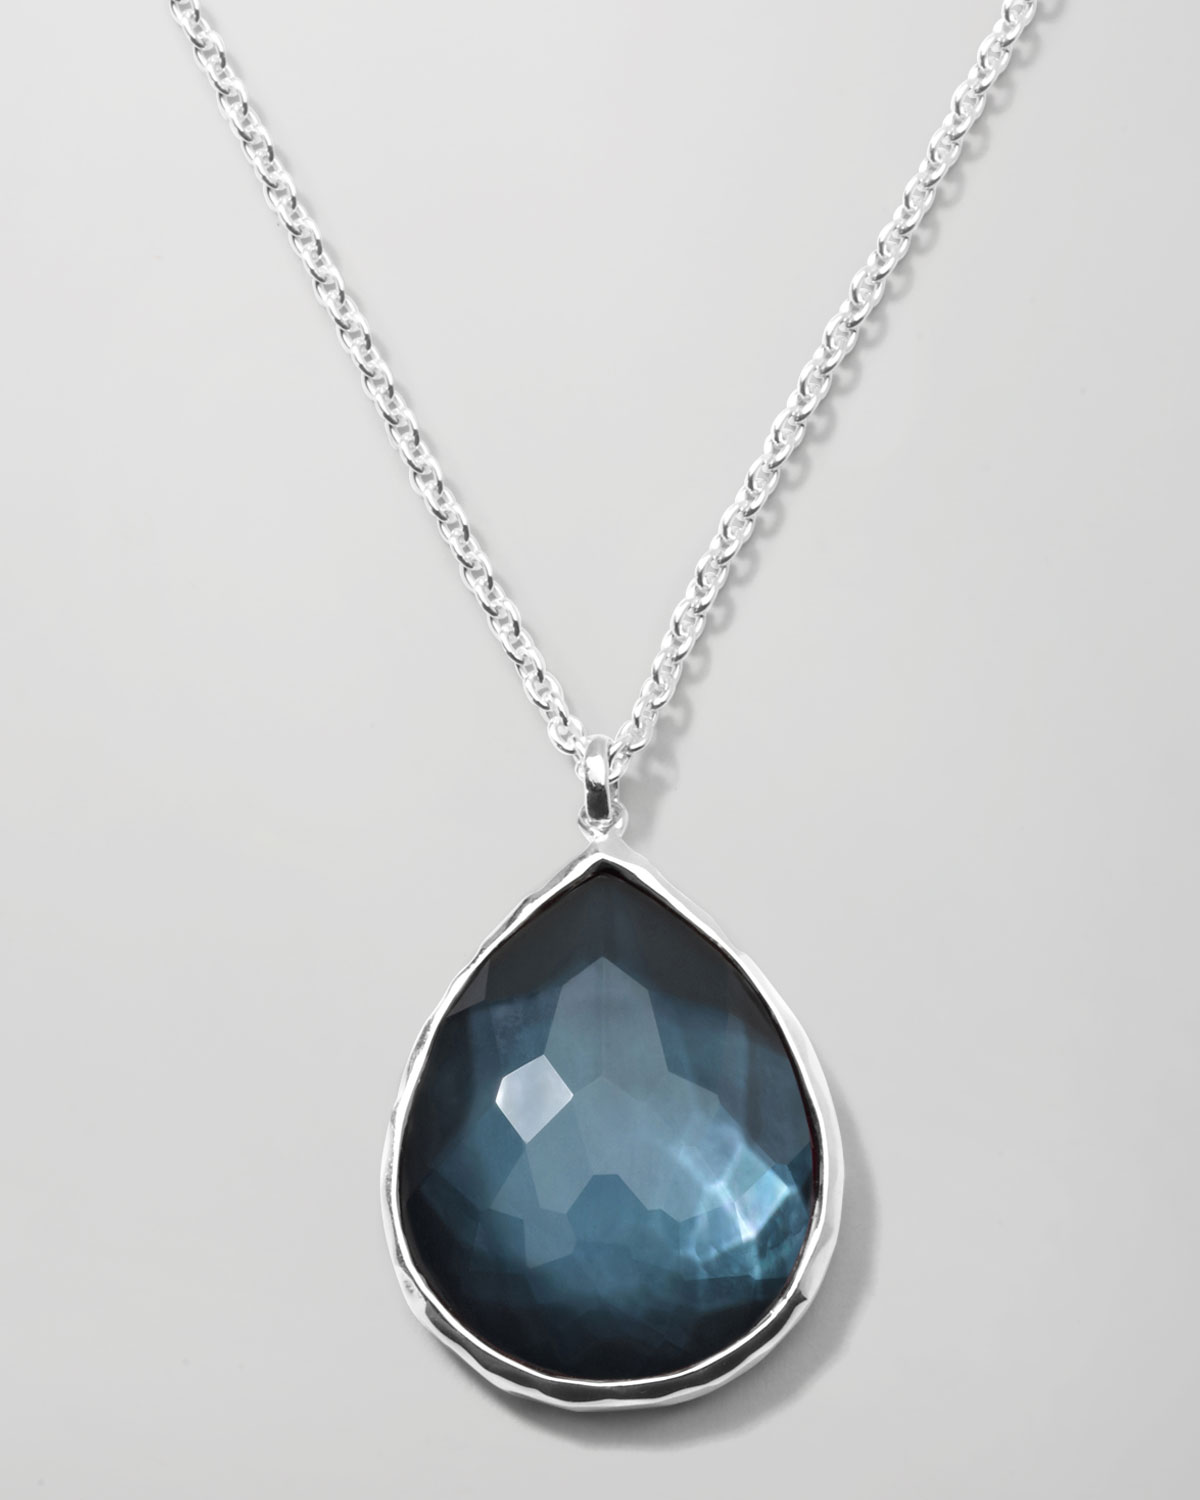 Lyst ippolita wonderland silver large teardrop pendant necklace in gallery aloadofball Choice Image